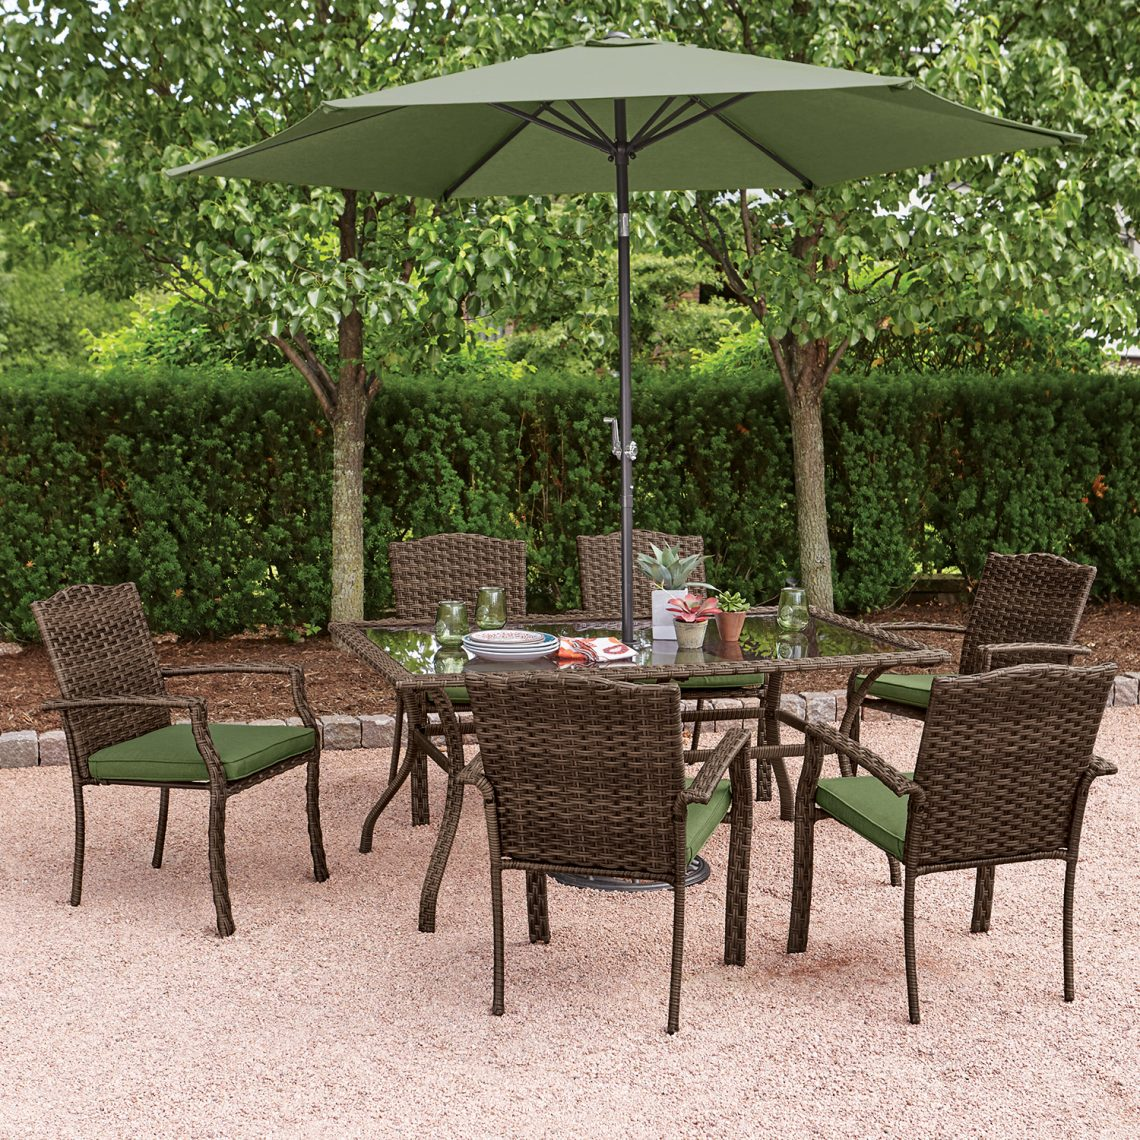 At hortons home lighting in la grange we offer a variety of patio sets bistro sets high top sets benches and outdoor decor if youre redesigning your